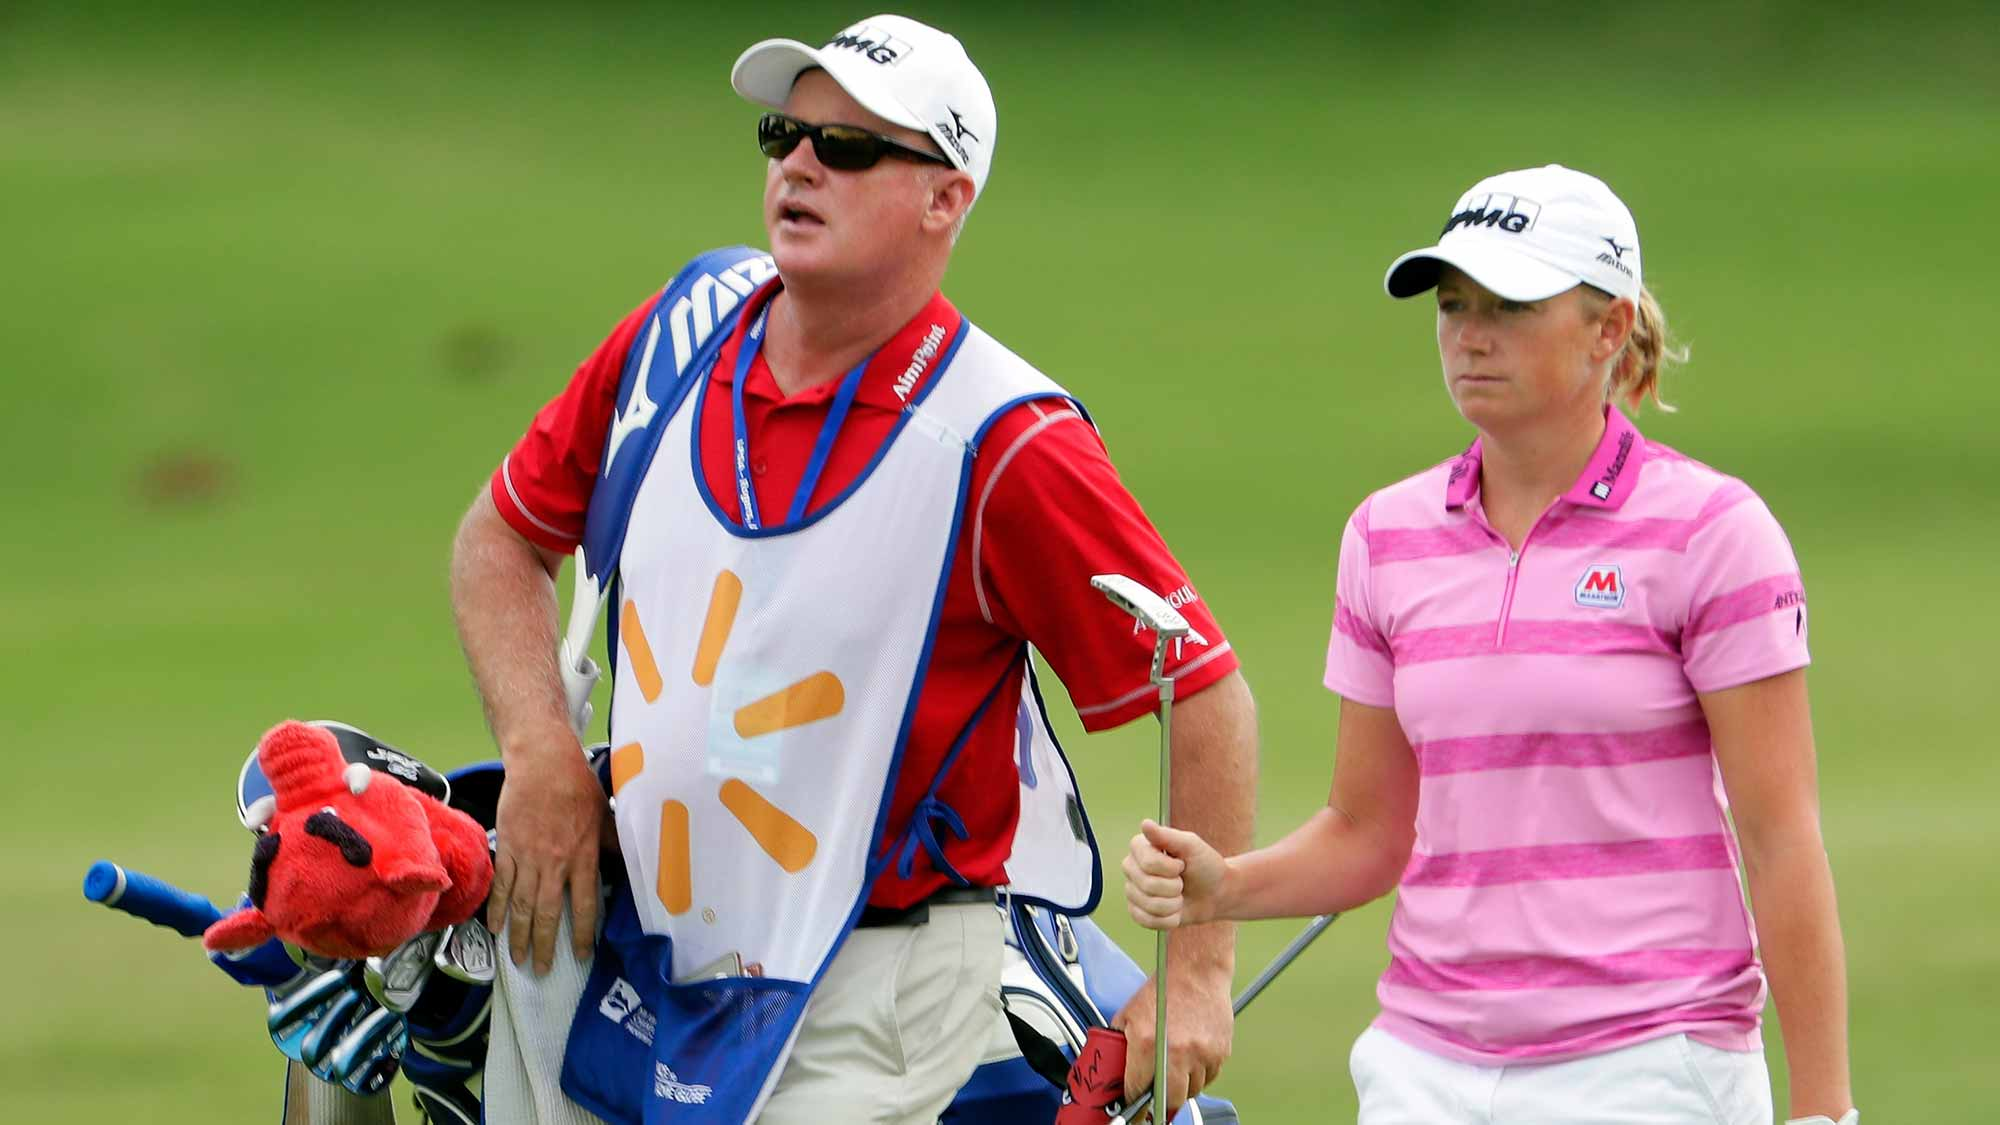 Stacy Lewis walks up the fairway alongside her caddie on the 10th hole during the first round of the Walmart NW Arkansas Championship Presented by P&G